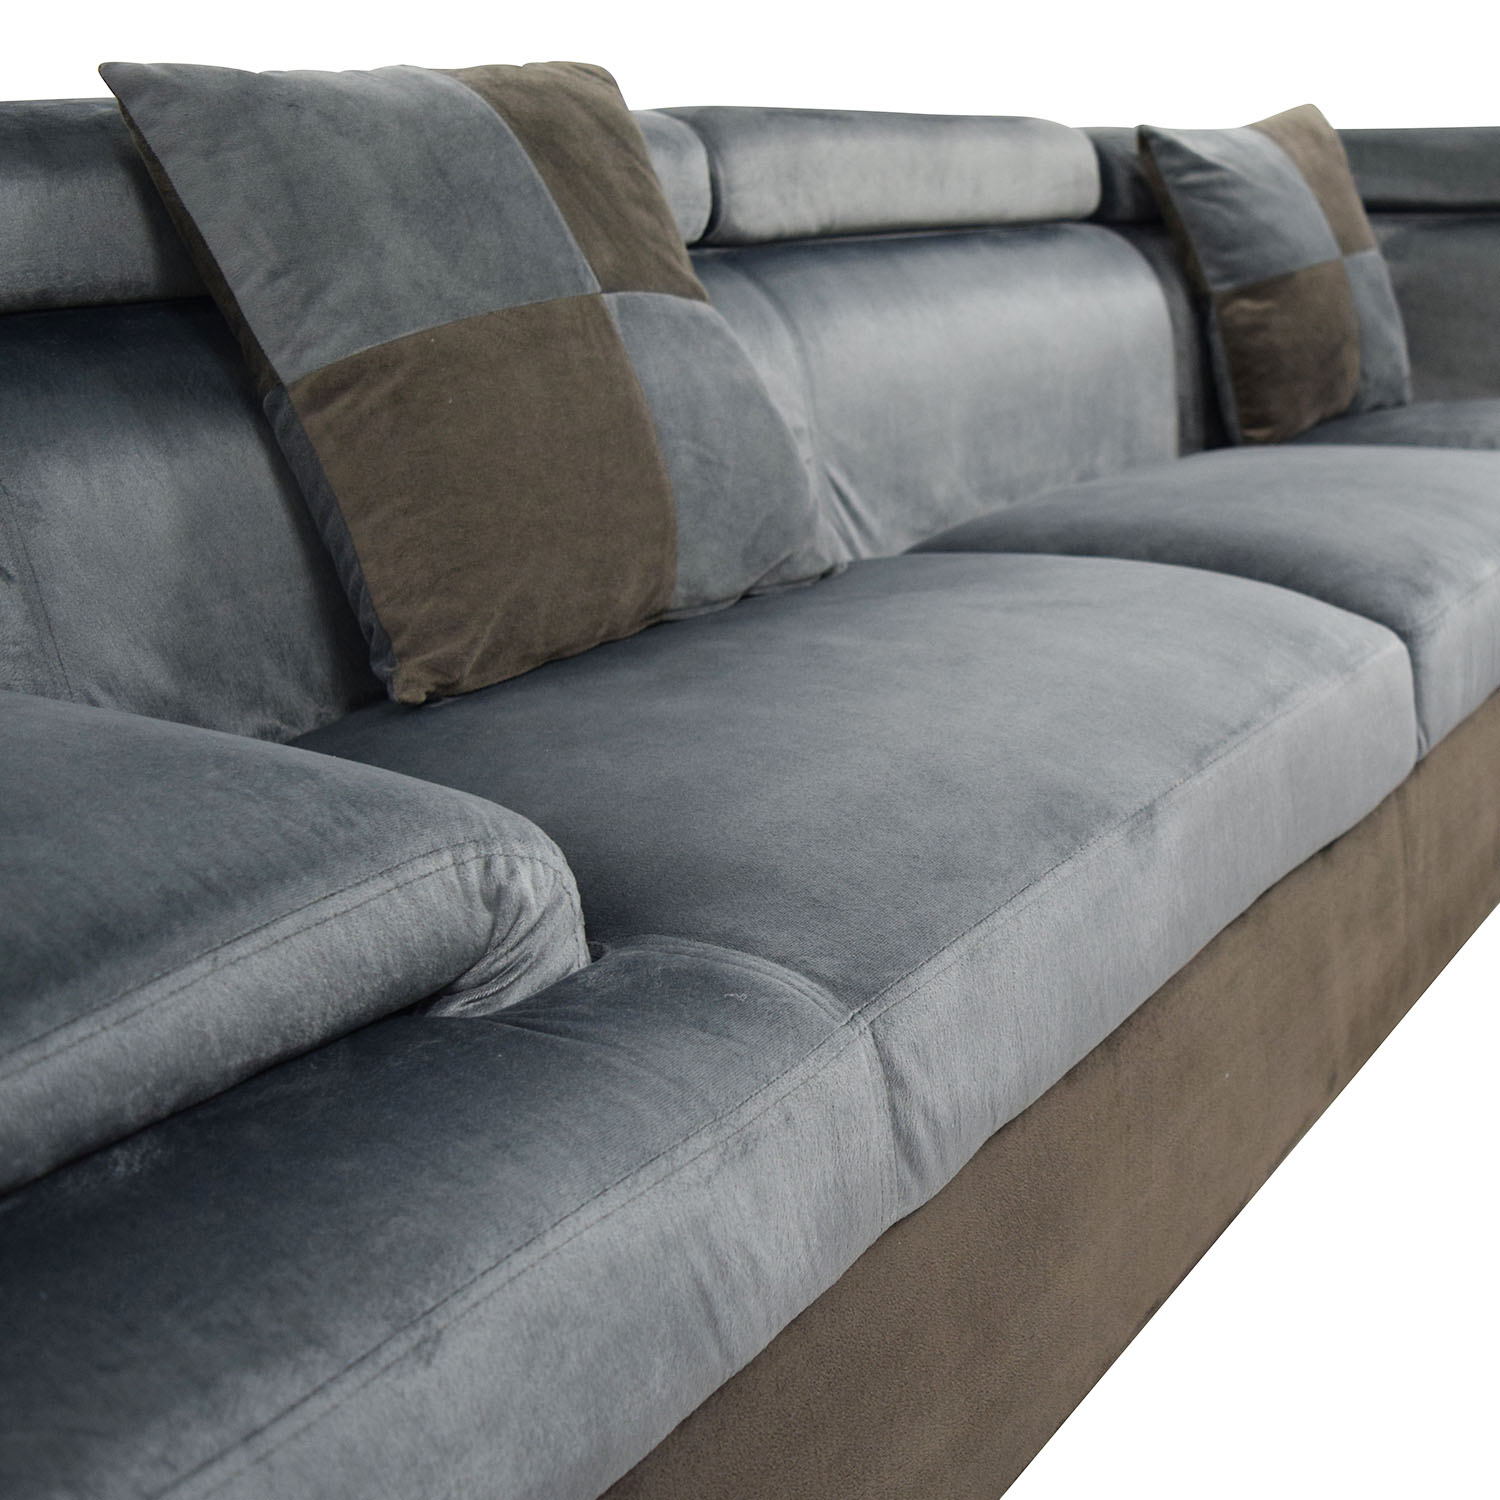 Sectional Sofas With Two Recliners: Beverly Furniture Beverly Furniture Two Piece